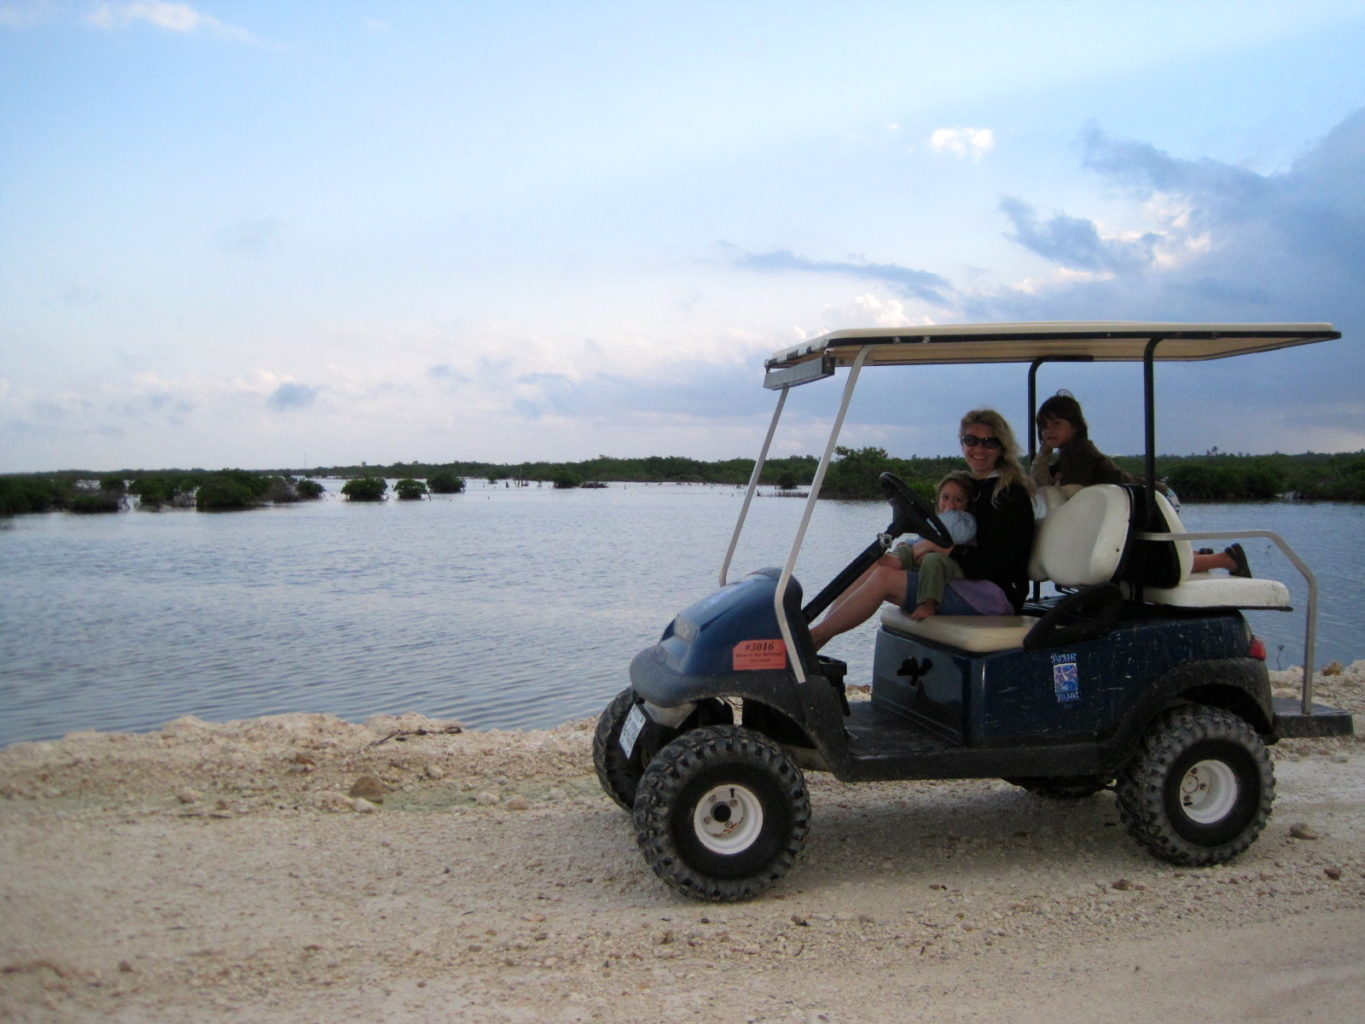 Family in a dune buggy on the beach - TravelingMom